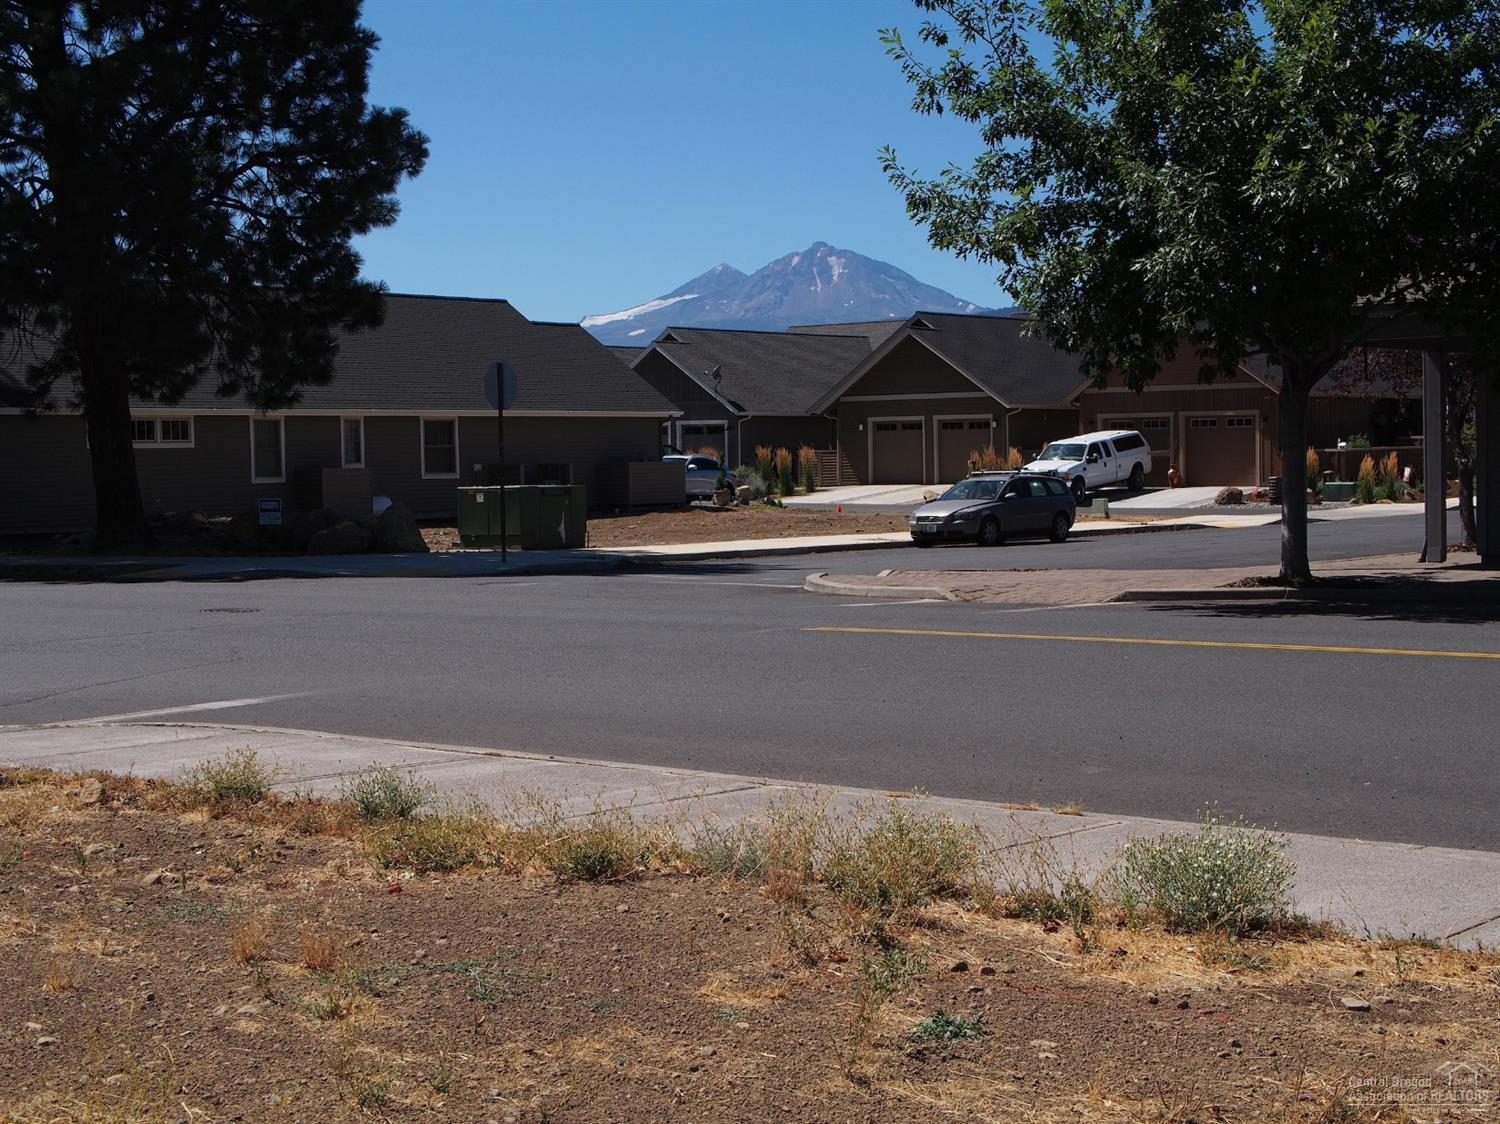 More mountain views from Lots 11 & Lot 12.